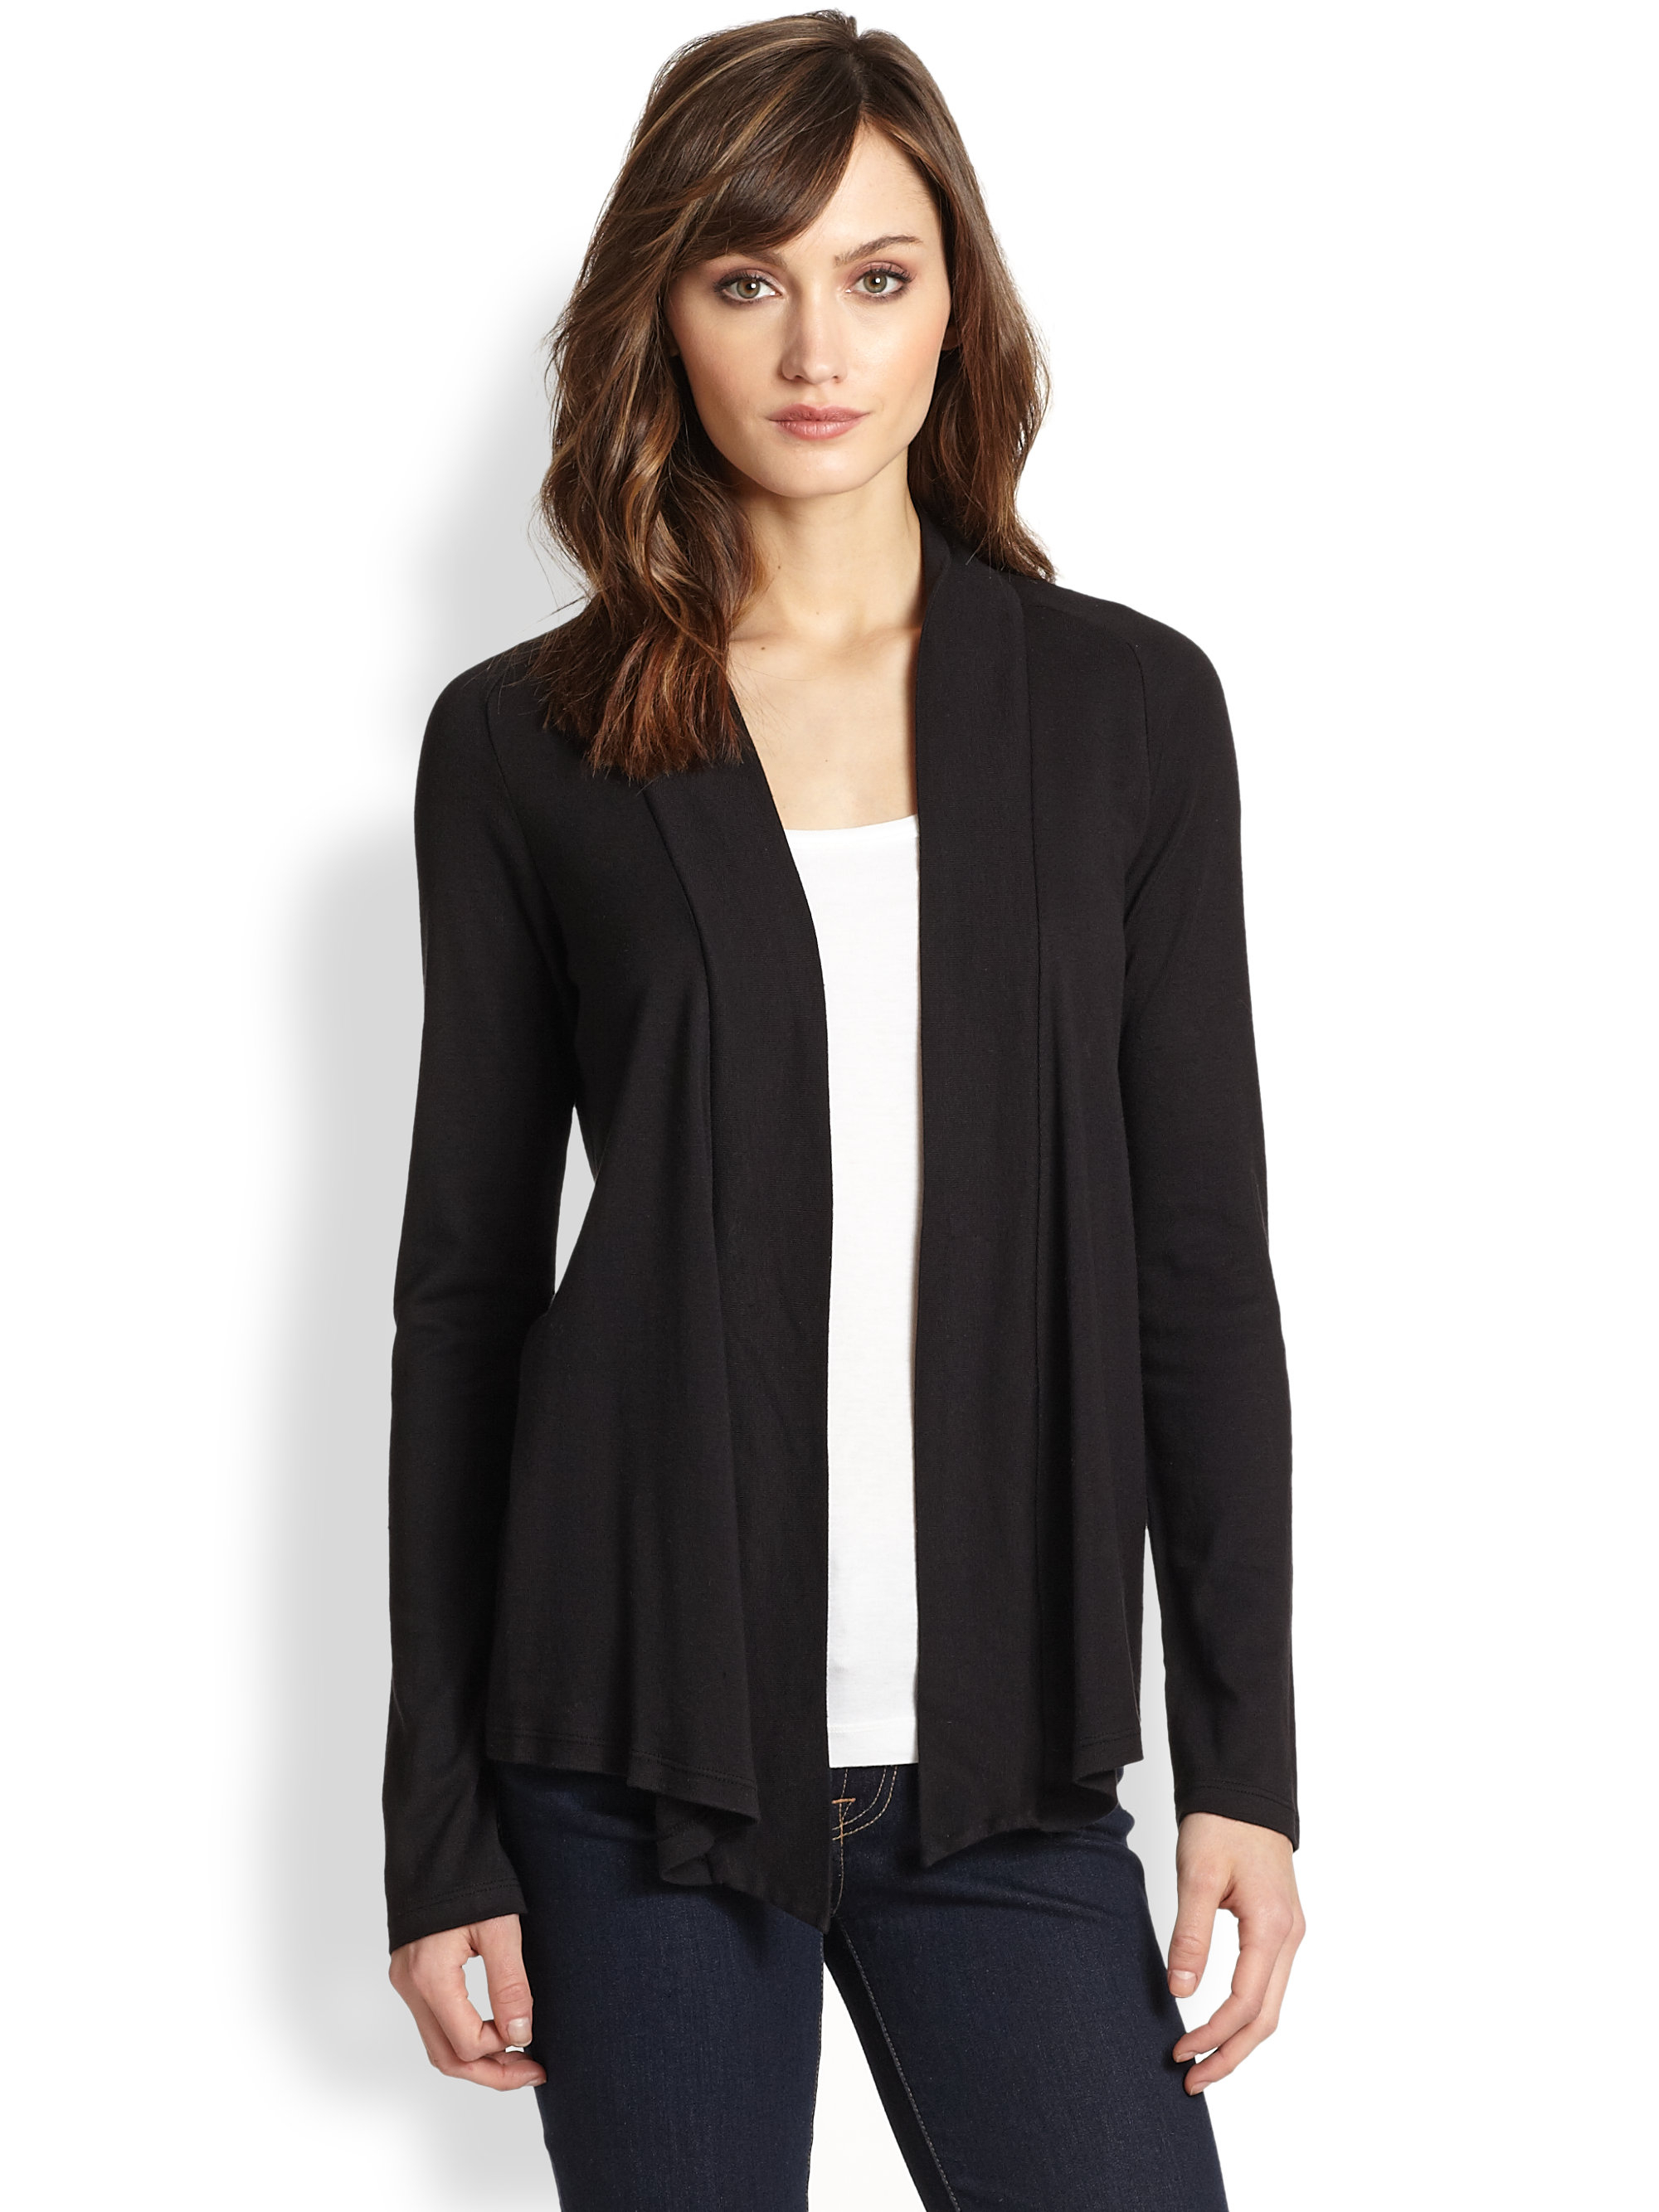 Open front black cardigan sweater - results from brands Calvin Klein, SECONDARY, Unique Bargains, products like NO BRAND 89th & Madison Open Front Cardigan M, Black, ALFANI Petite Open-Front Cardigan, Created for Macy's - Blue P/S,